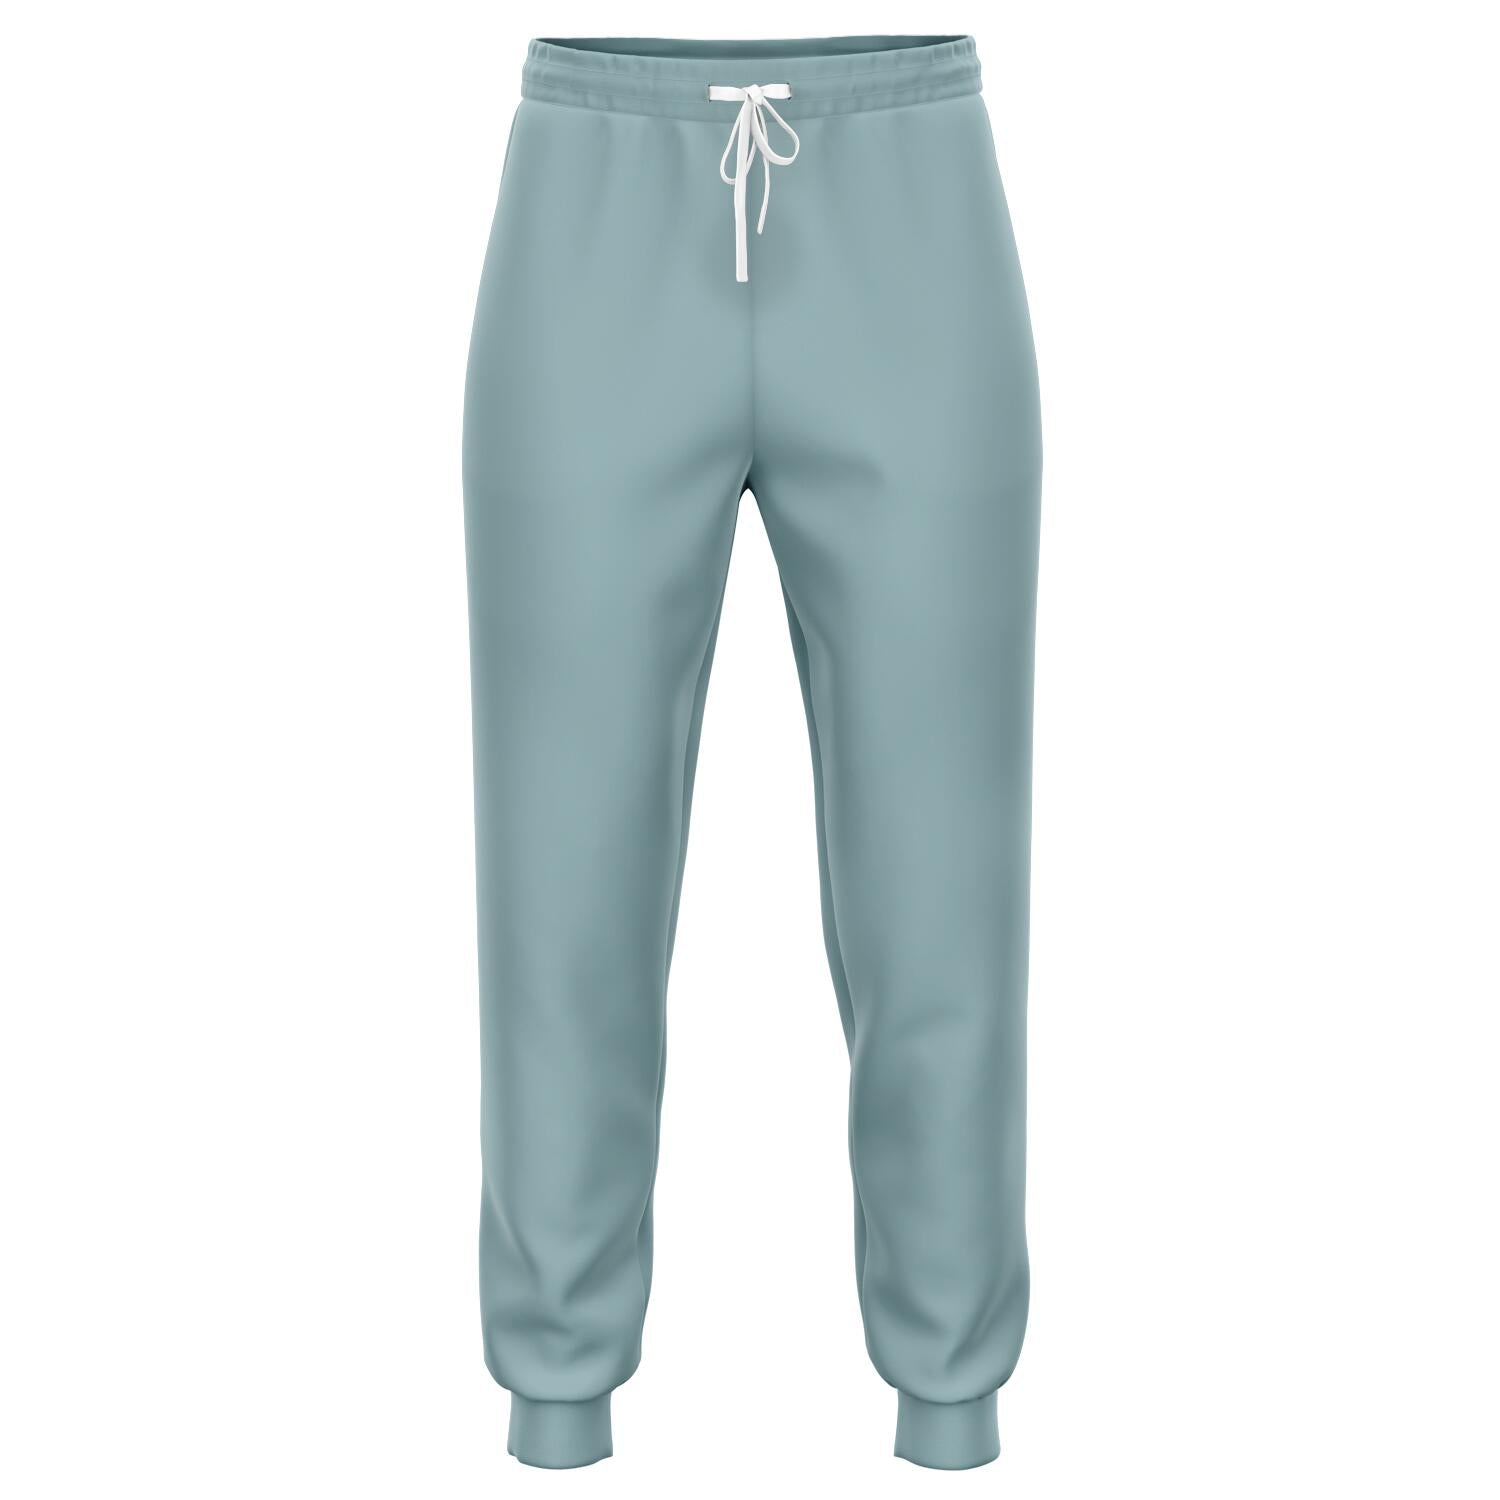 Duck Egg Blue Joggers